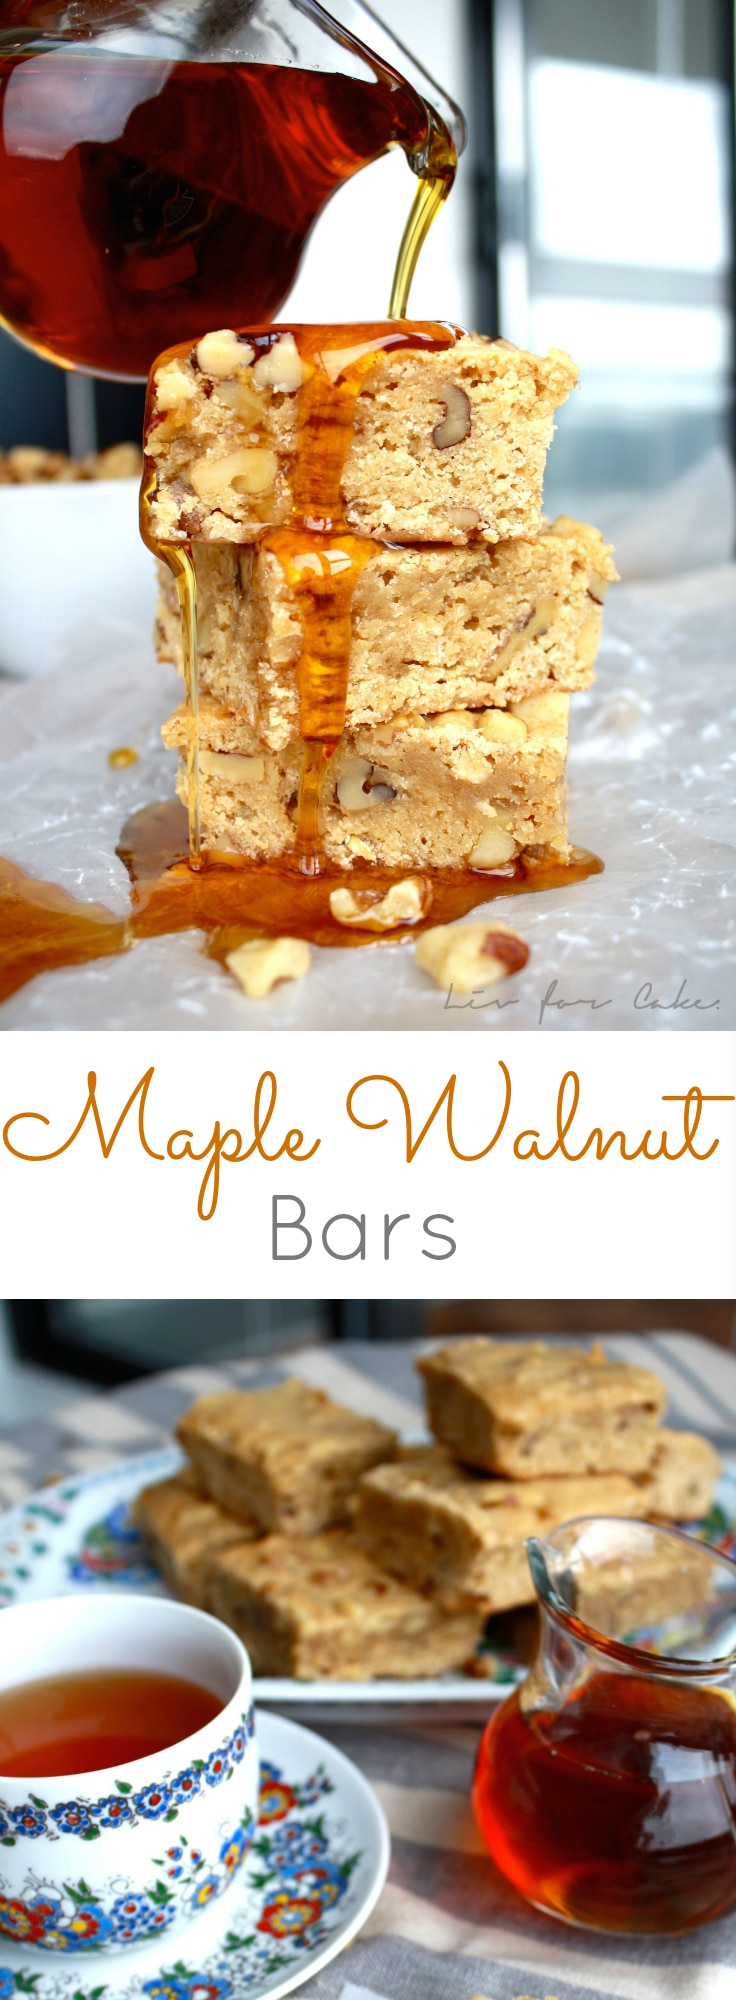 Maple syrup and walnuts kick these blondies up a few notches. | livforcake.com